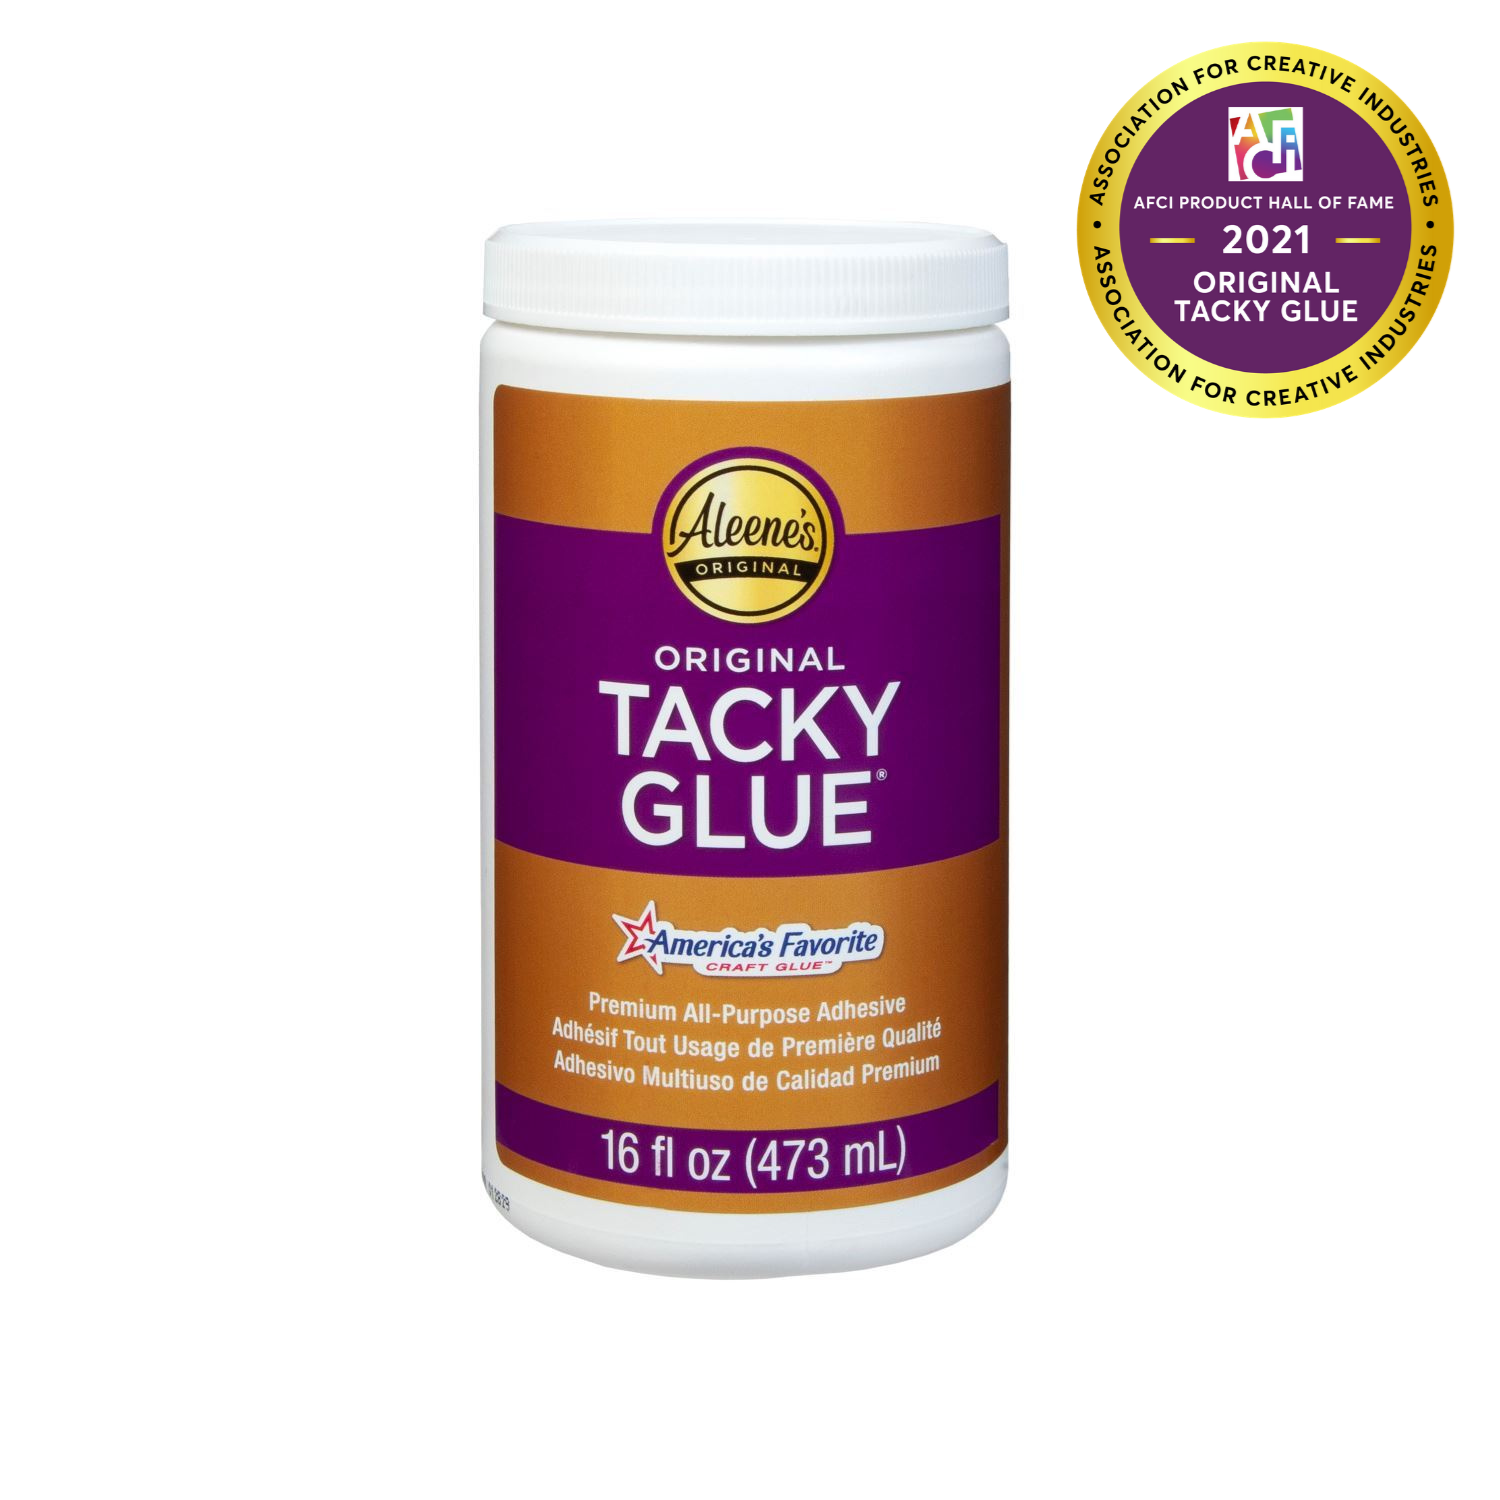 Aleene's® Original Tacky Glue 16 oz. Jar -  Aleene's Original Tacky Glue Inducted into AFCI Product Hall of Fame